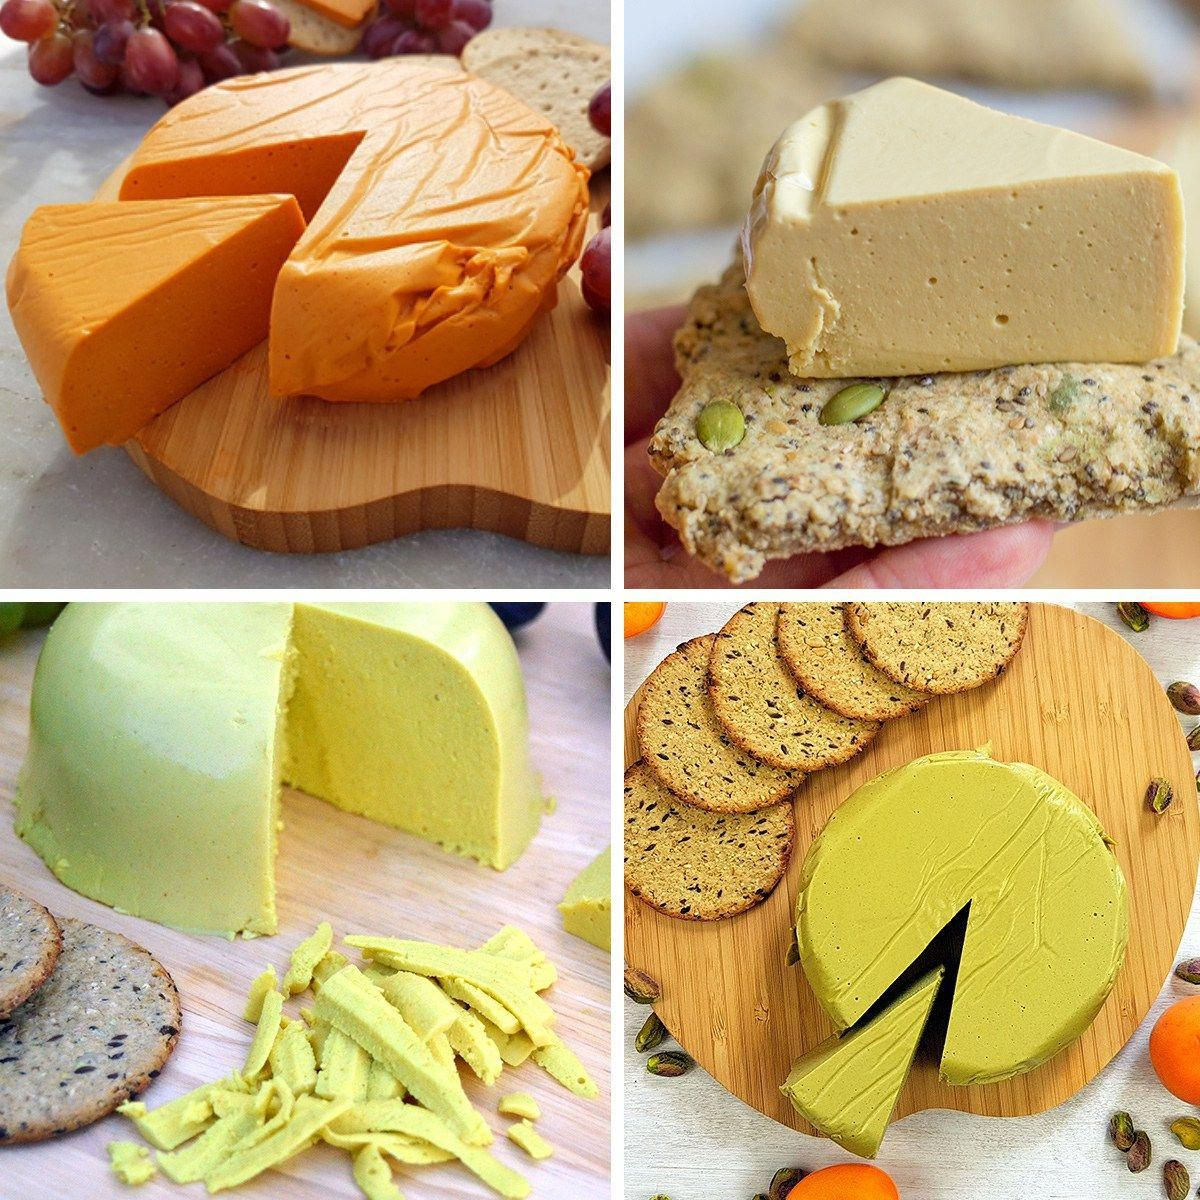 Amazing Vegan Firm Cheese Recipes - easy to make hard vegan cheese that can grate slice and melt. Made out of nuts or seeds in a few minutes and full of protein and heart healthy fats. Recipes include smoked cashew cheese, pistachio cheese , sunflower cheddar and marmite yeast extract cheese